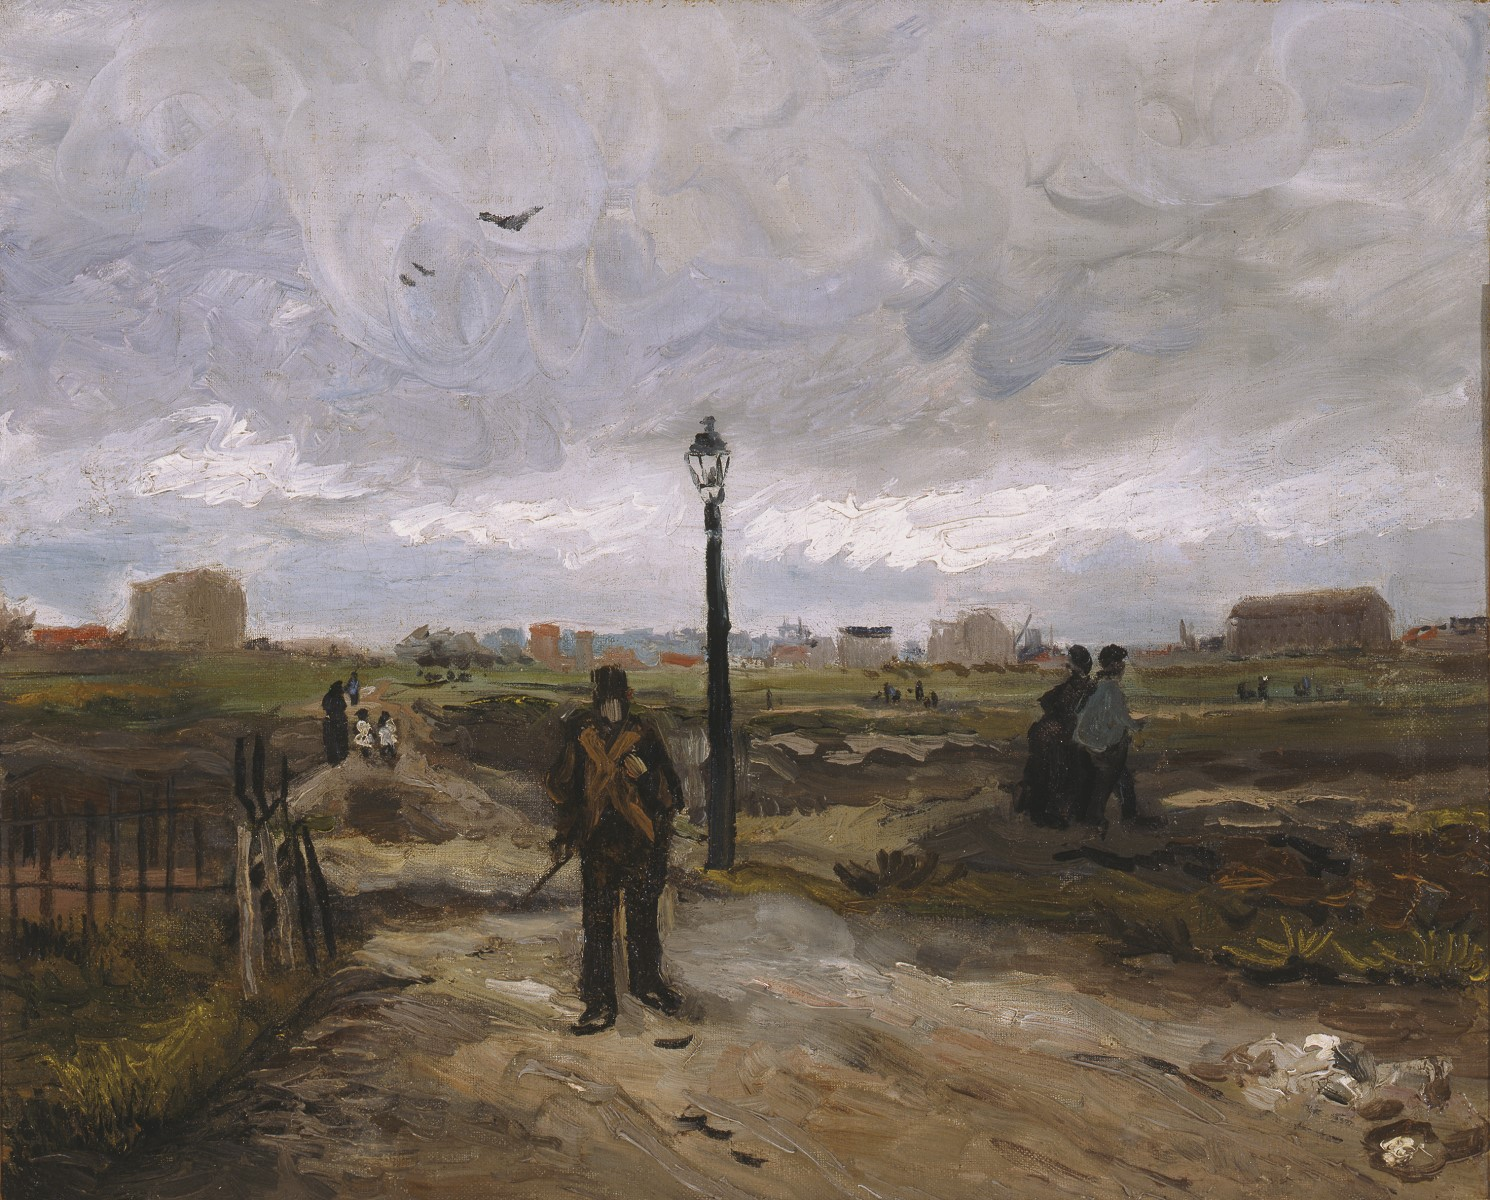 Vincent van Gogh (Dutch, 1853¬–1890), The Outskirts of Paris, 1886. Oil on canvas, 18 × 211⁄8 in. Private Collection in memory of Marie Wangeman, L.2005.1.